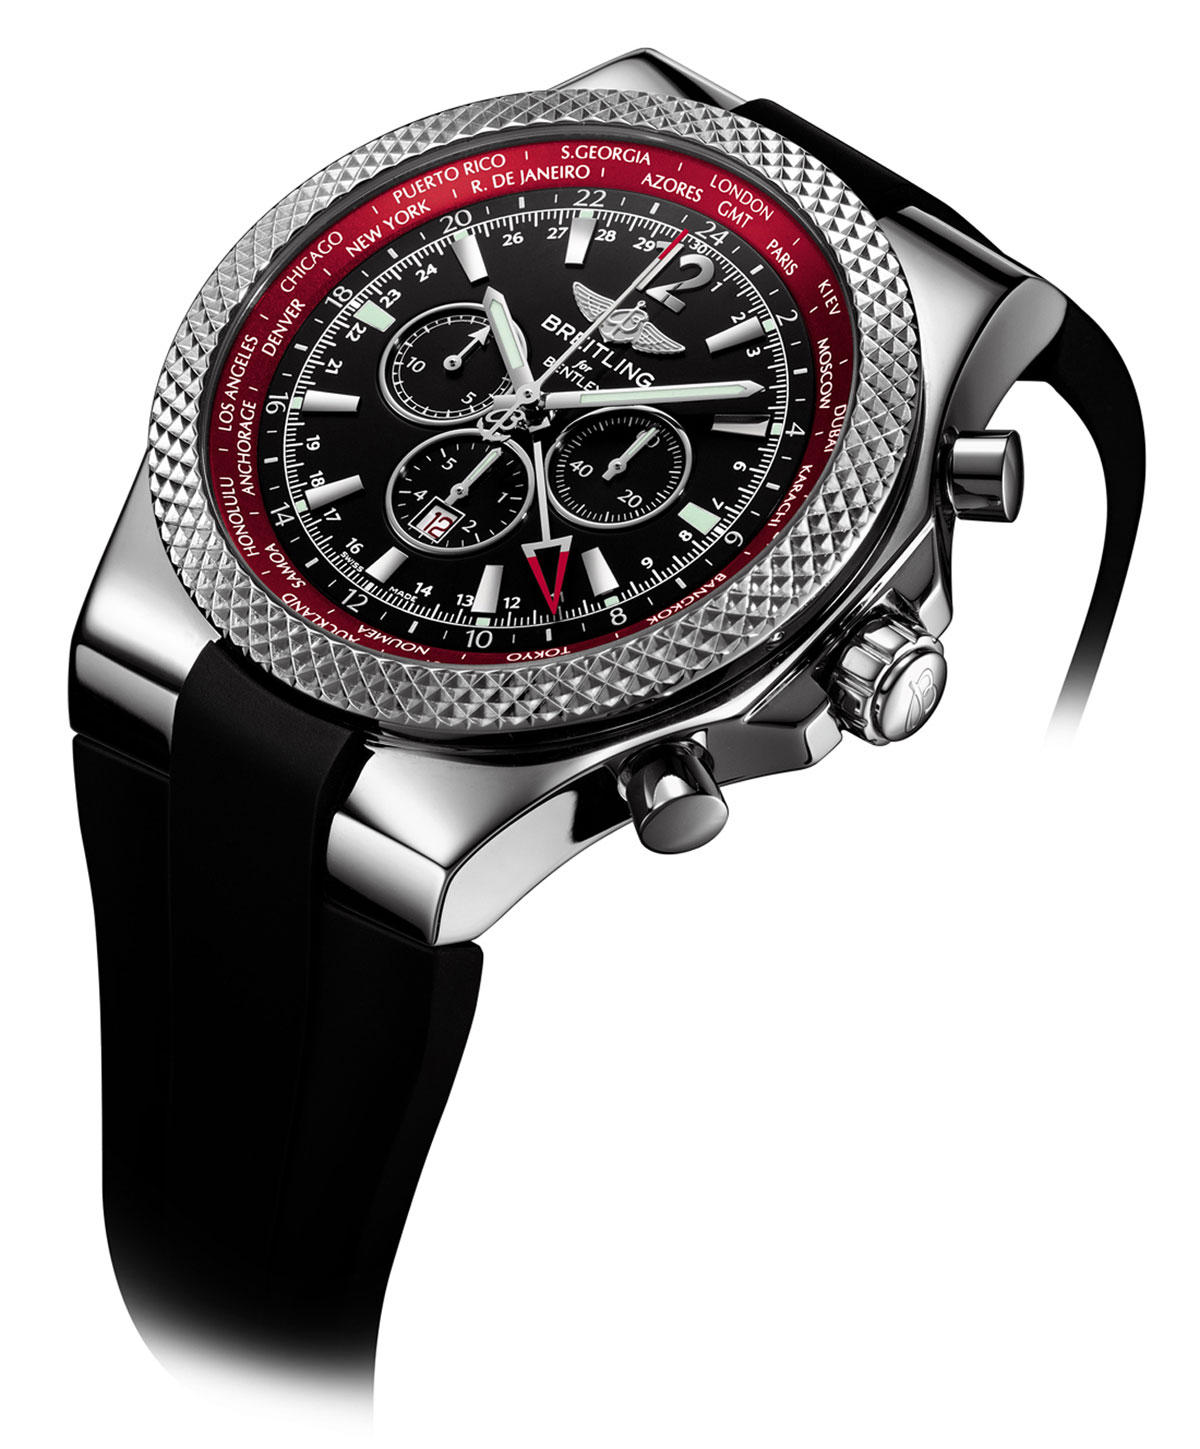 Breitling Bentley Gt Wristwatches: A New Range For BENTLEY Collection Inspired By The